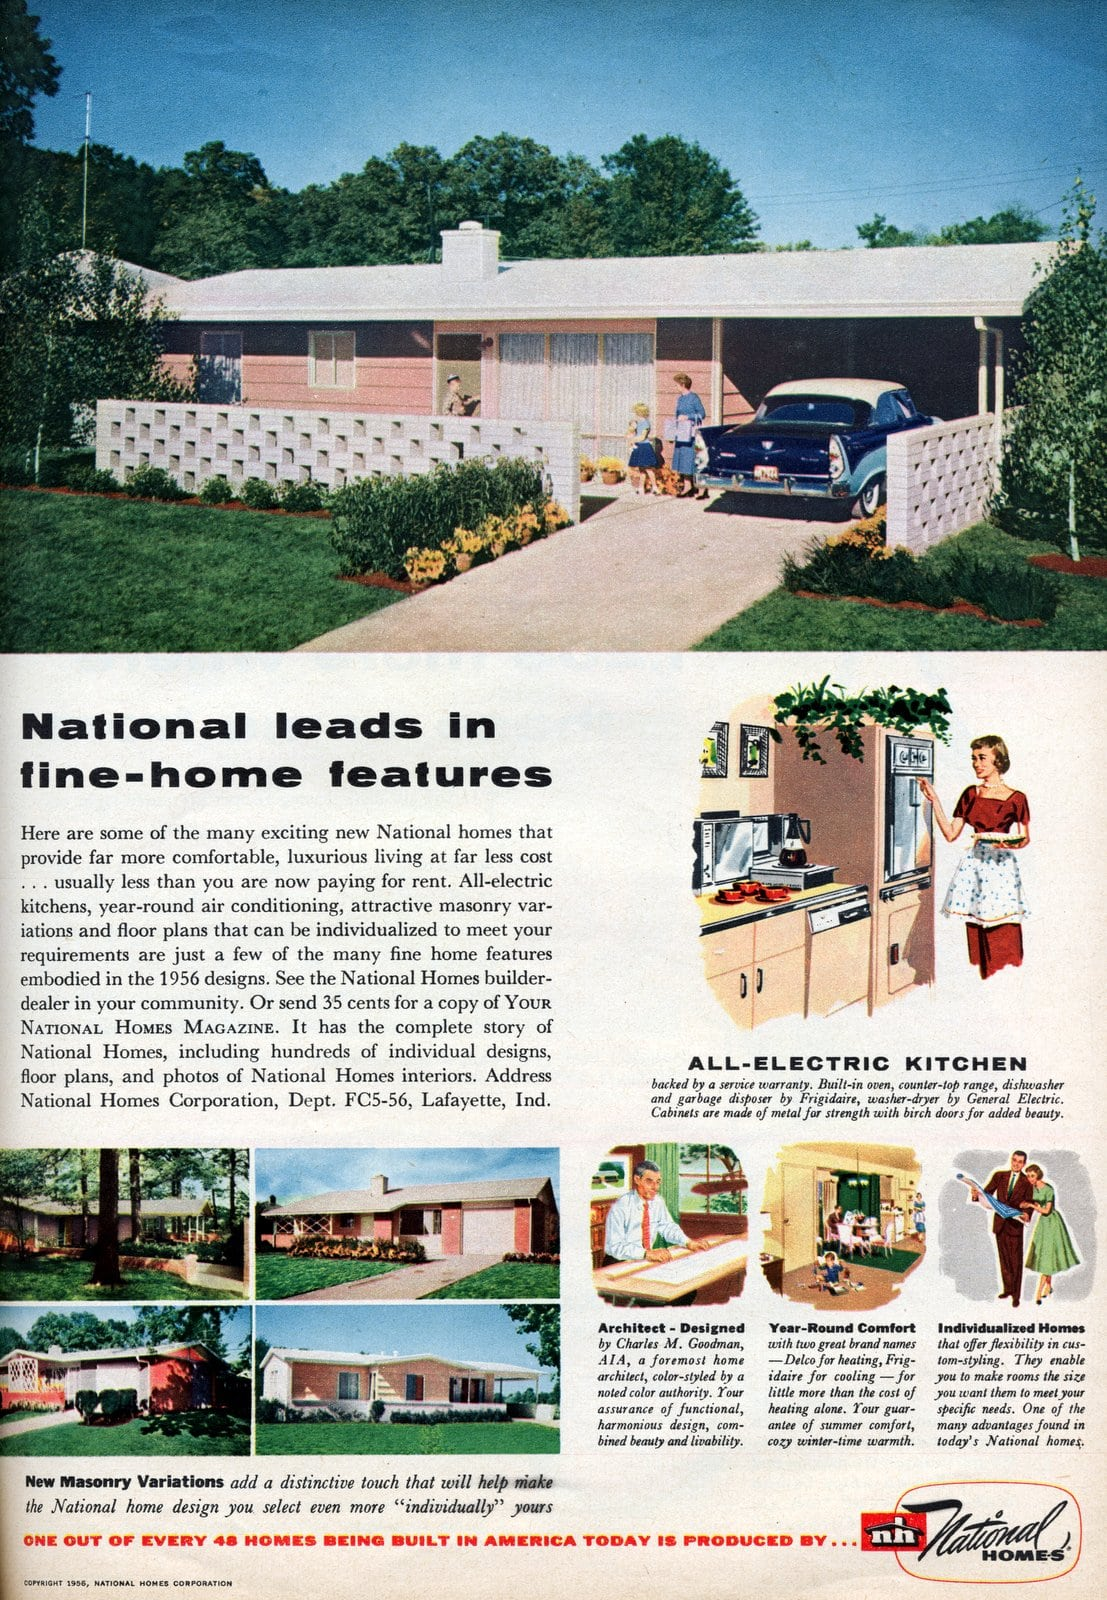 National leads in fine-home features (1956)